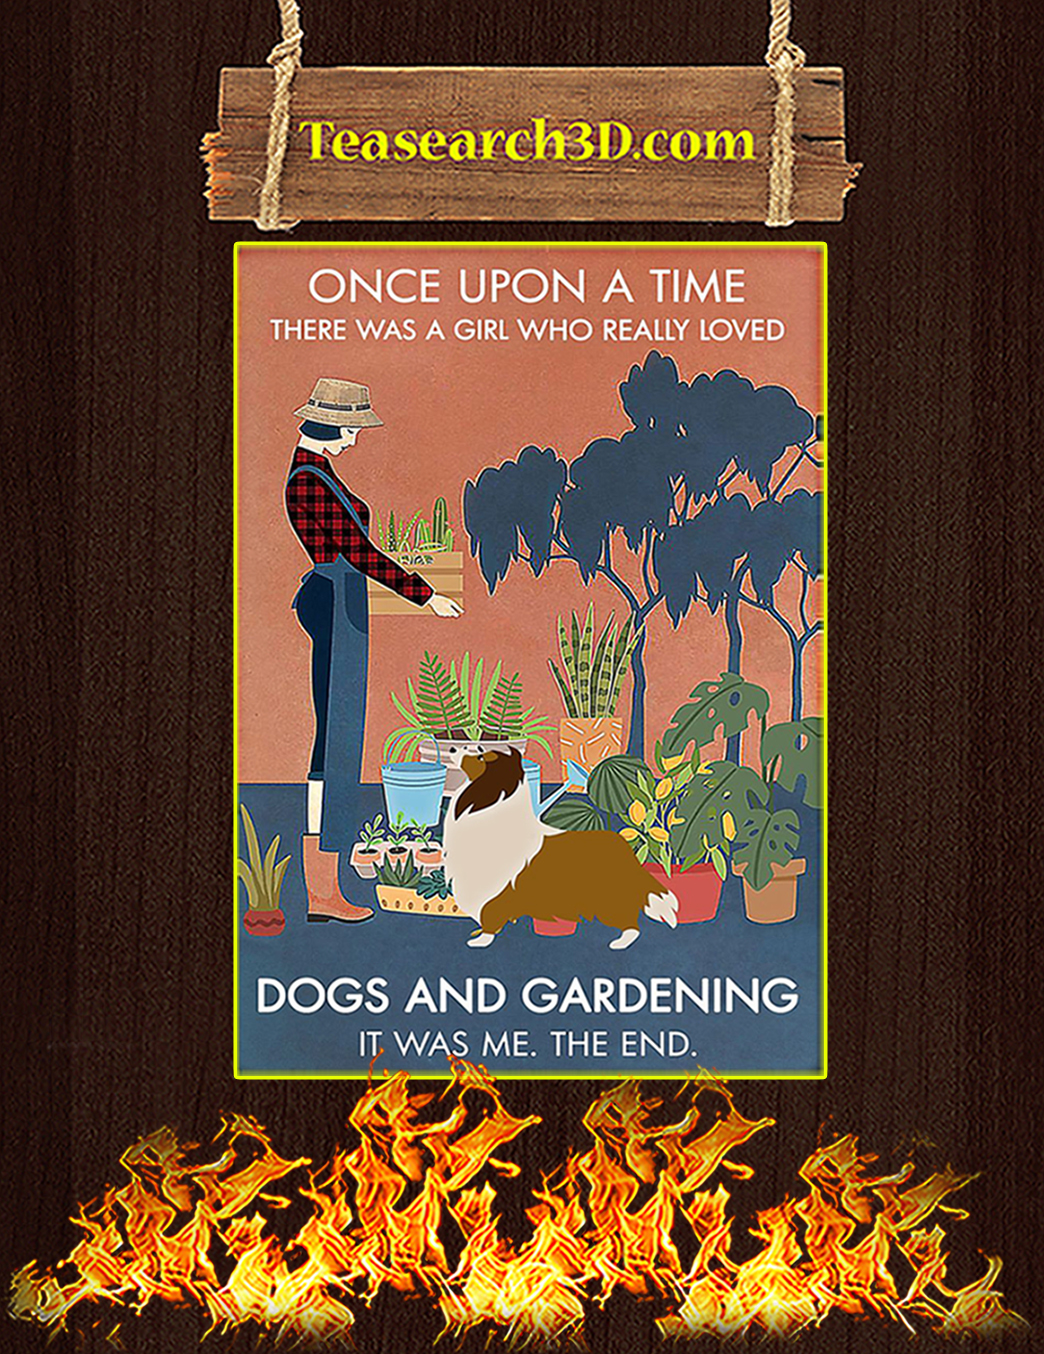 Shetland Sheepdog One upon a time there was a girl loved dogs and gardening poster A1